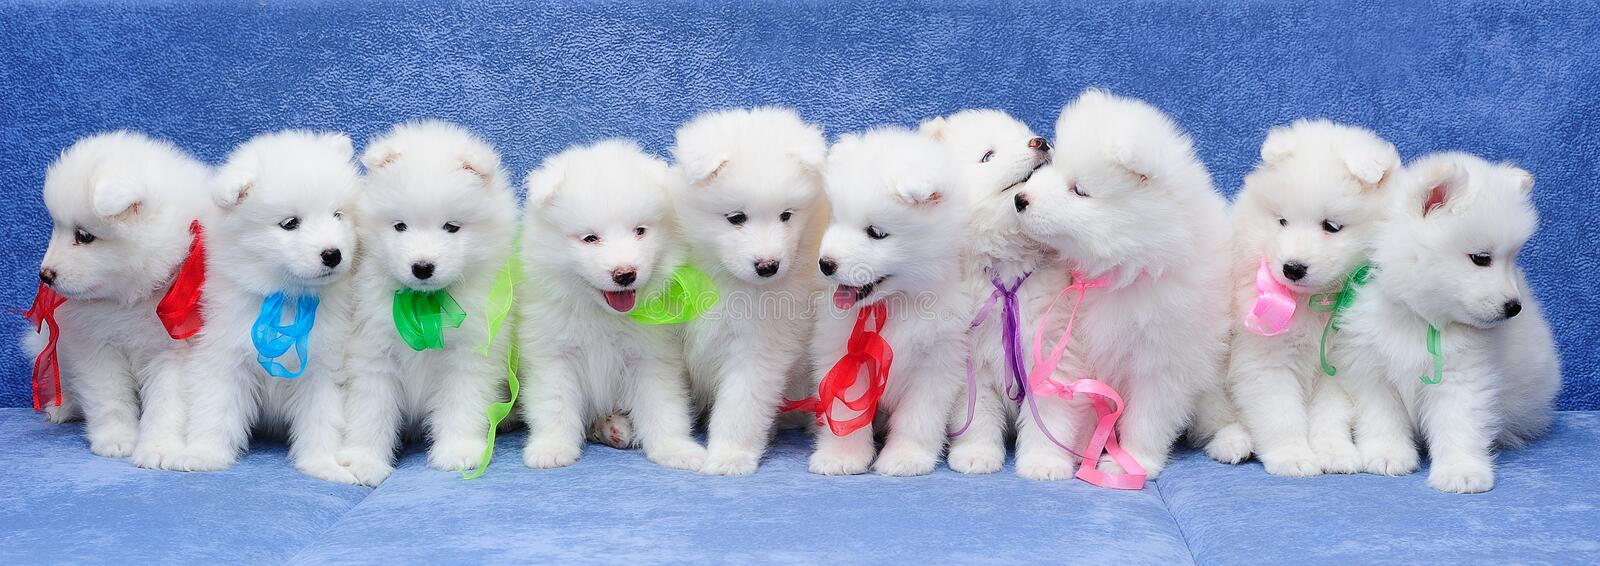 Download Ten Samoyed Dog Puppies Stock Photos - Image: 24942423